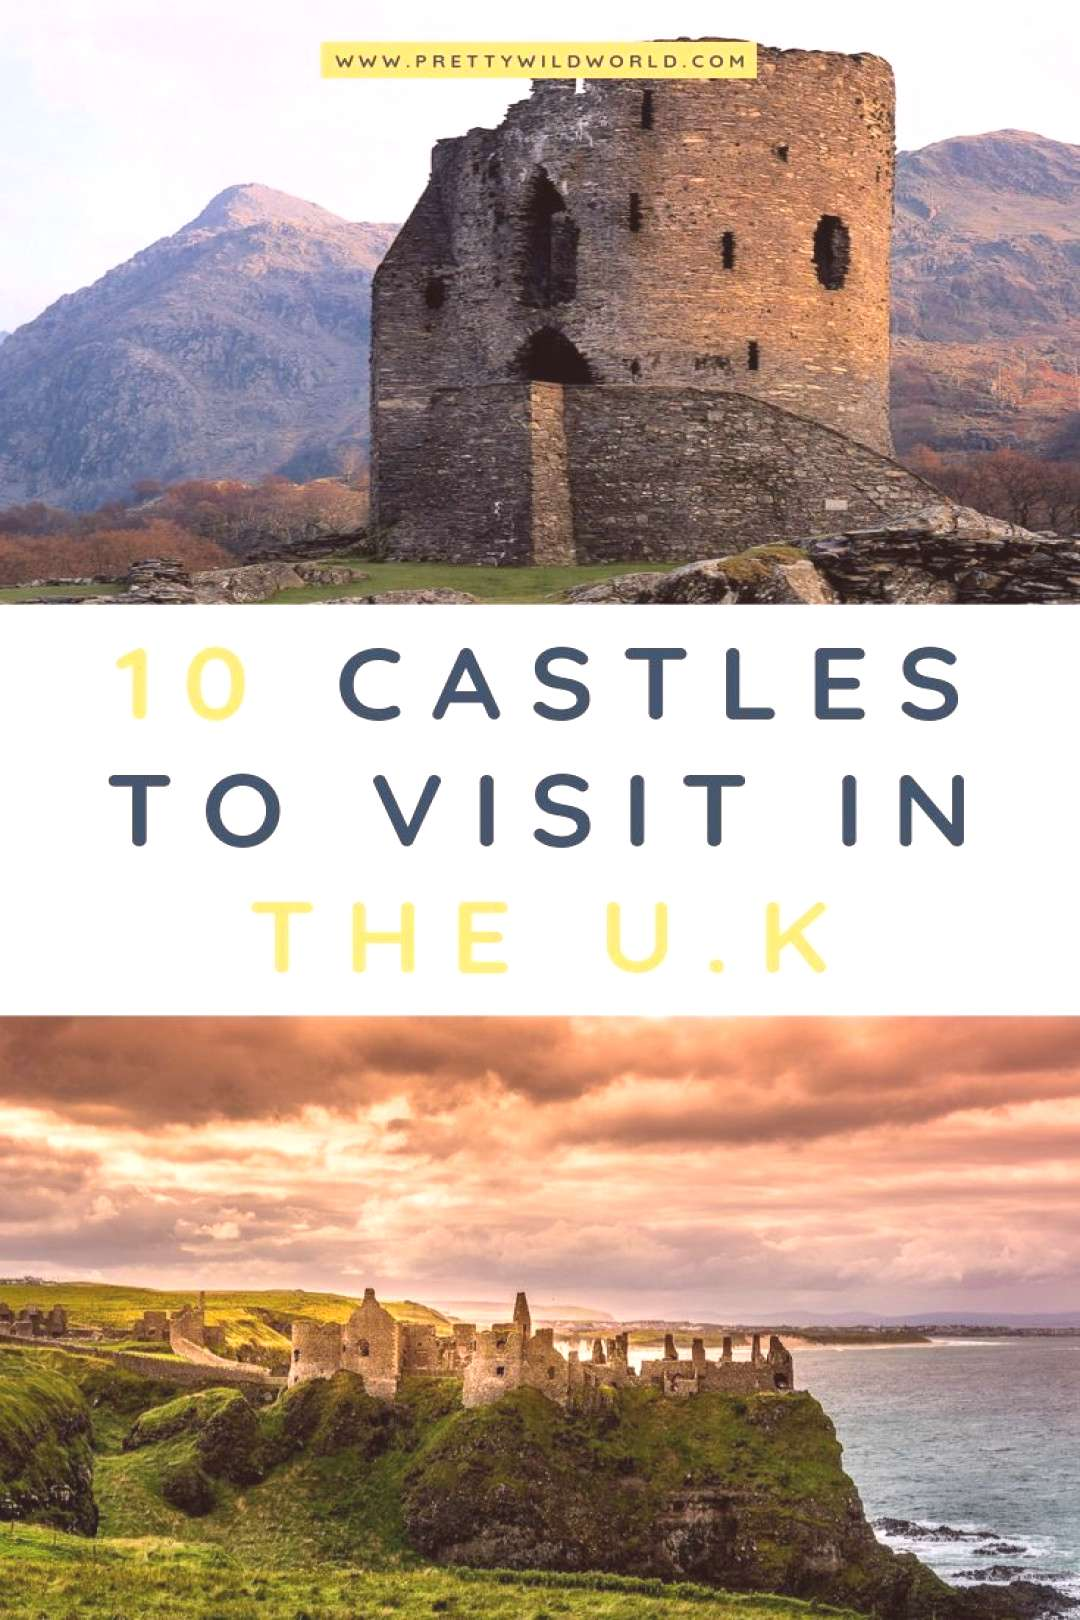 Top 15 Epic Castles in The UK Castles in the UK | Looking for something interesting and historical